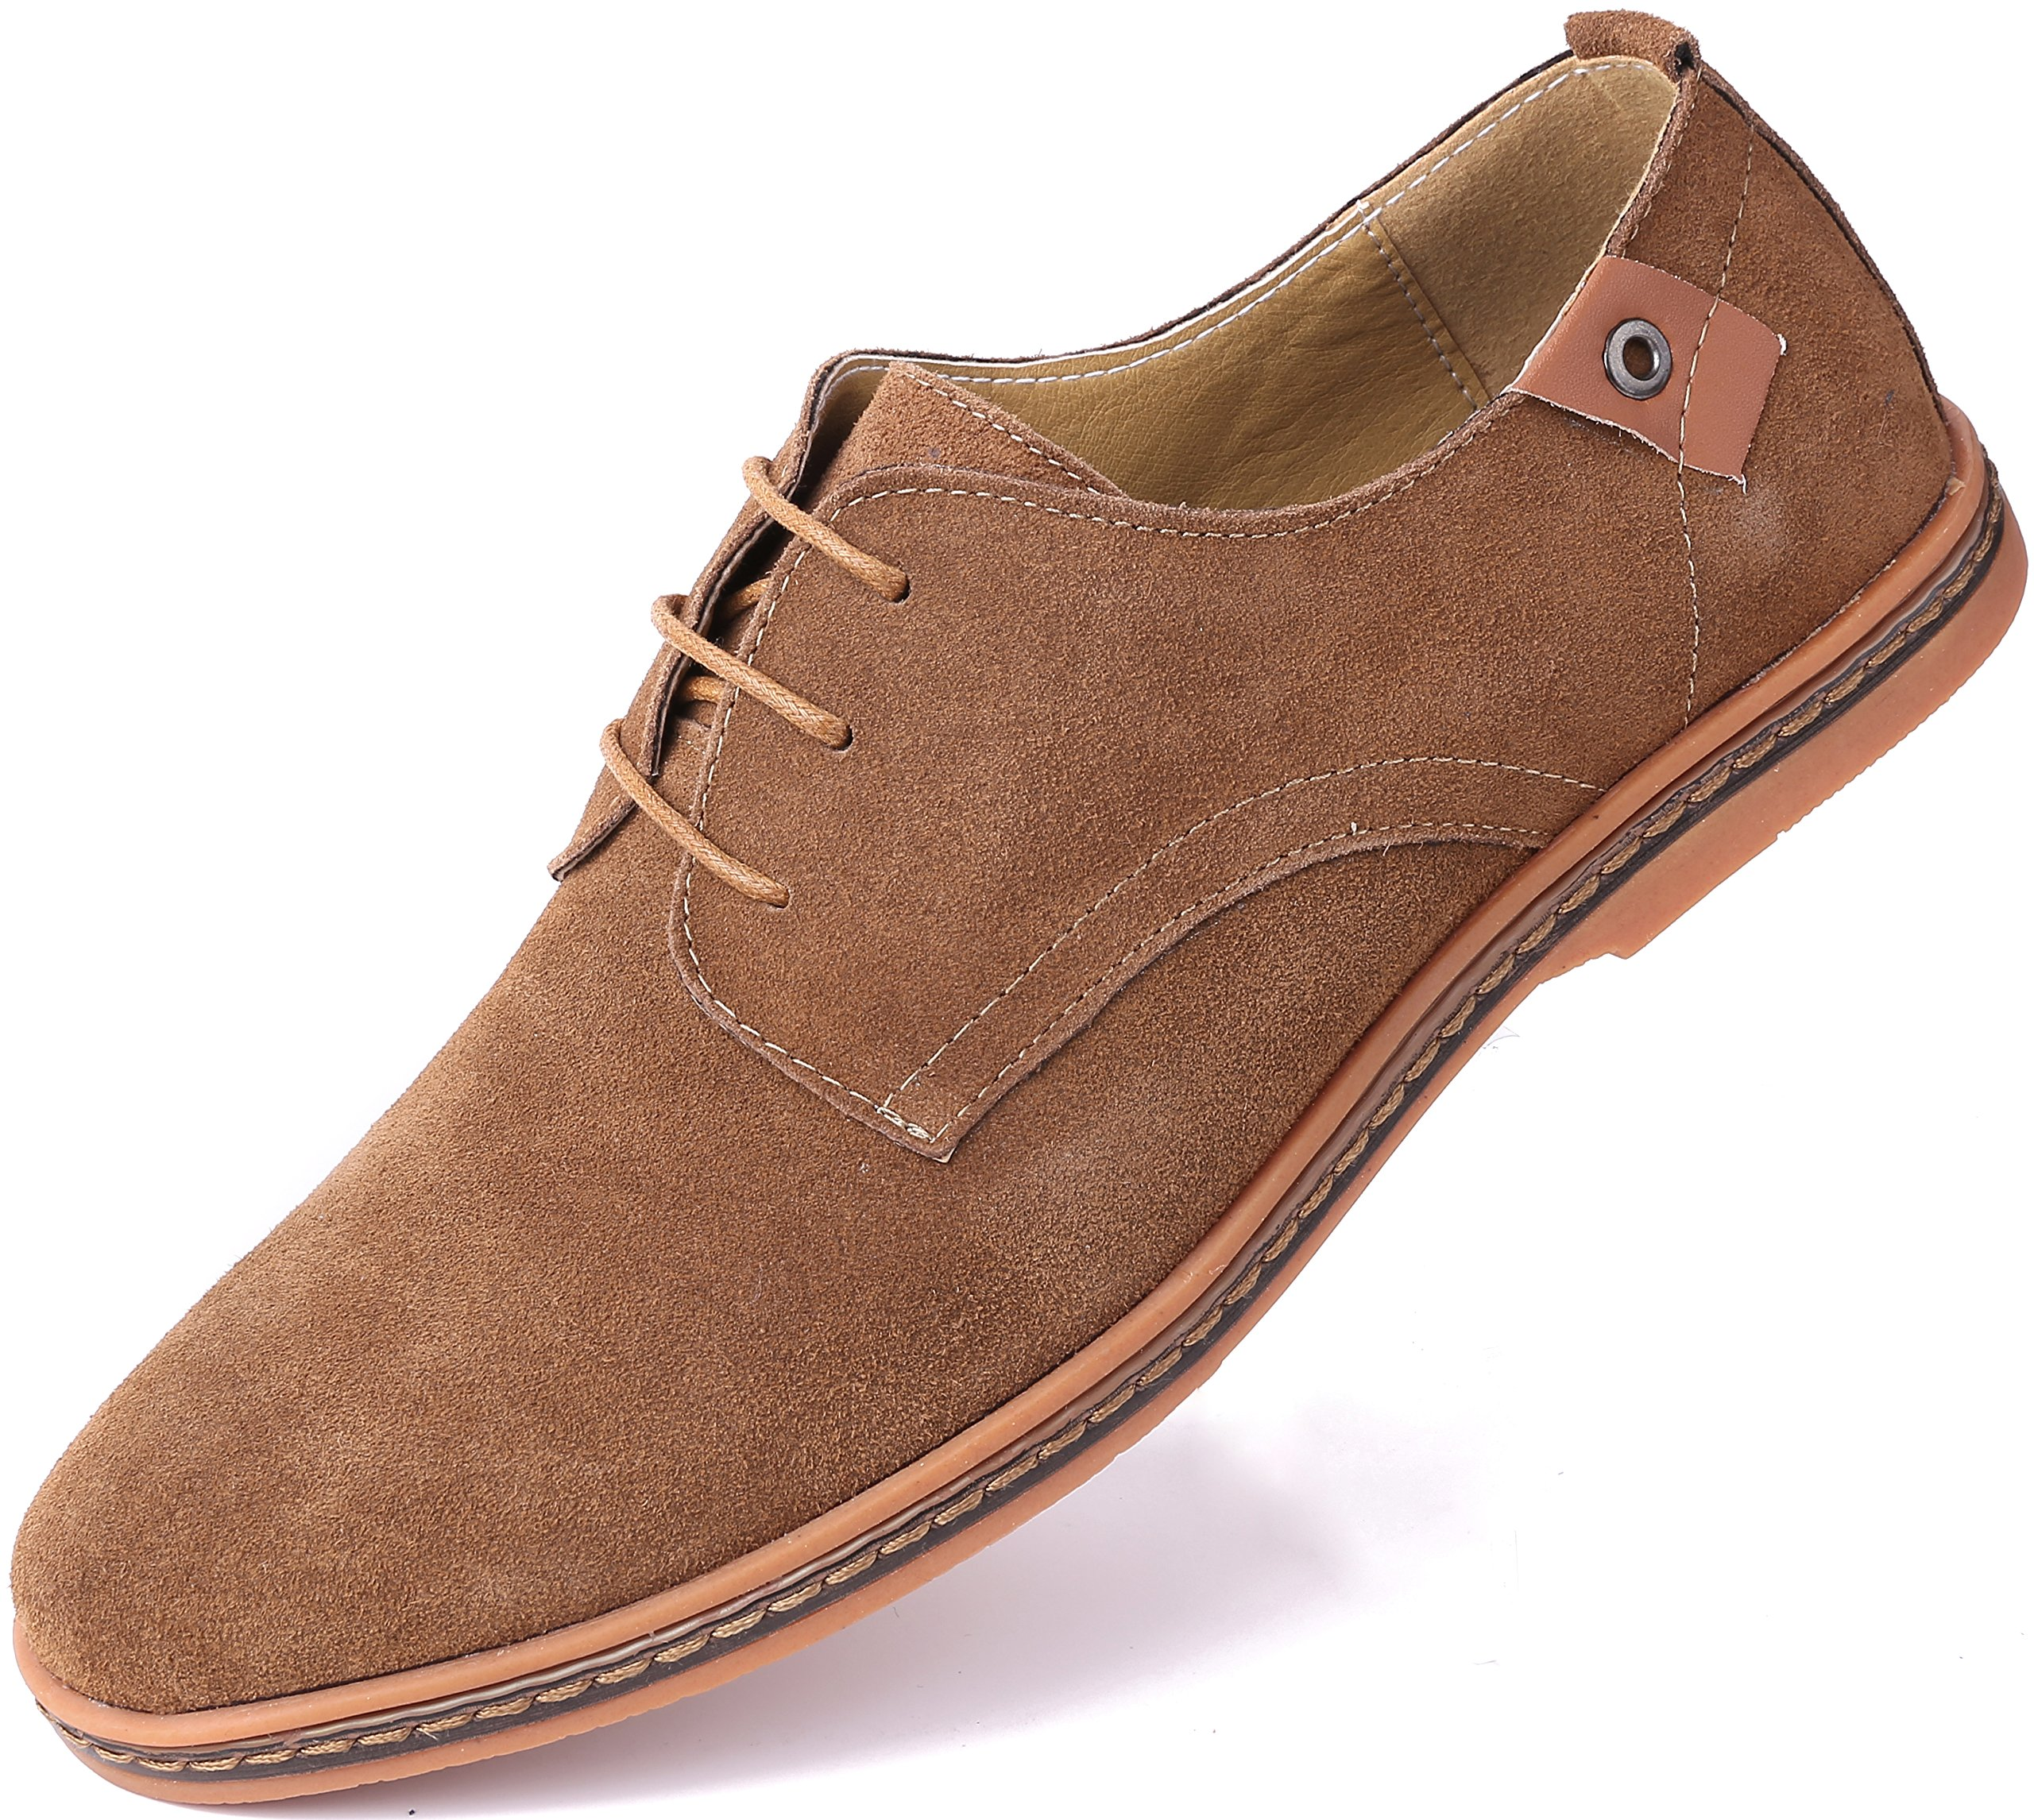 Marino Suede Oxford Dress Shoes for Men - Business Casual Shoes - Light Brown- 11 D(M) US